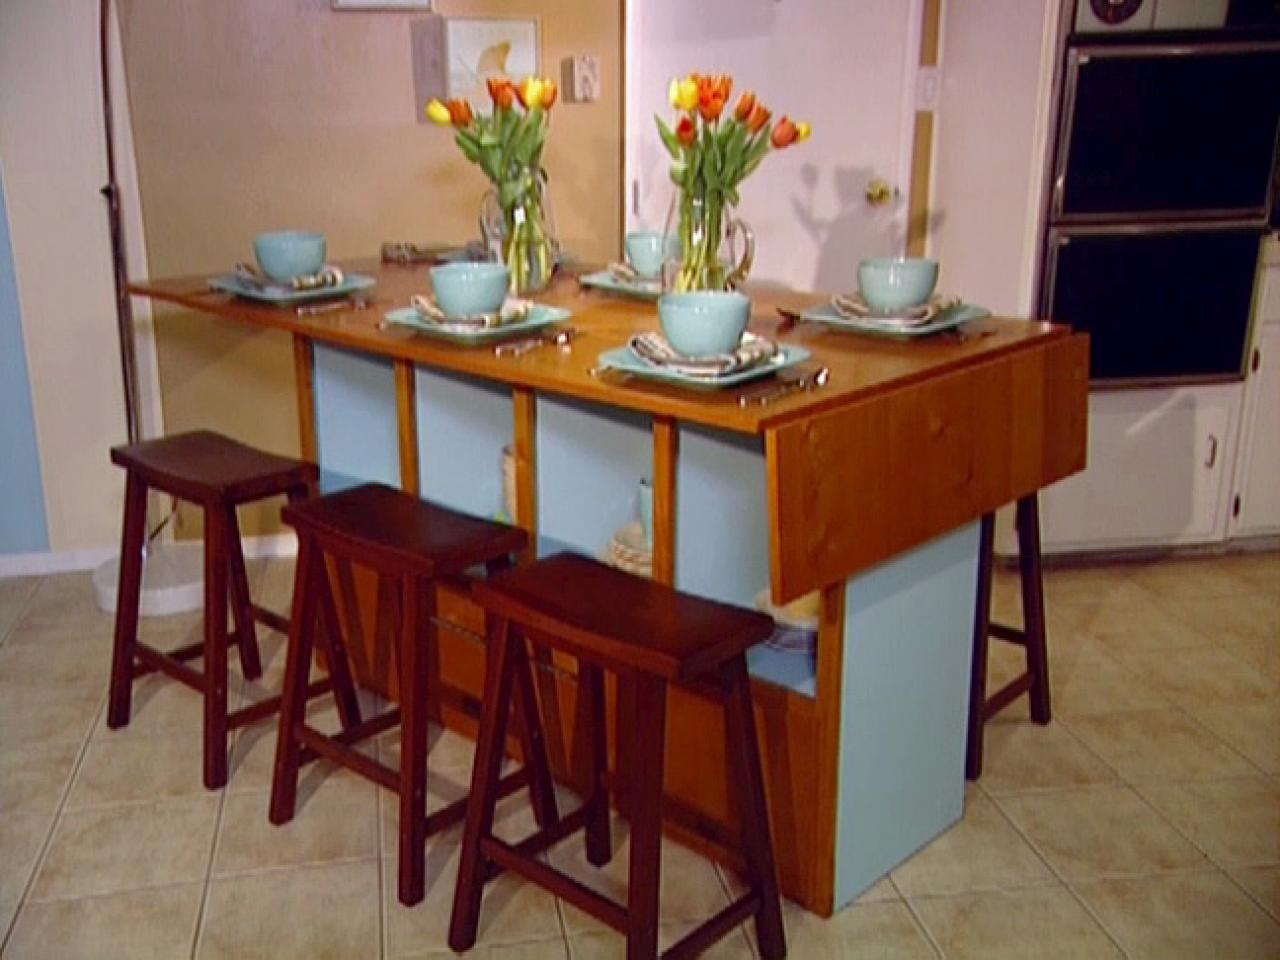 Kitchen Tables With Drawers Build a bar height dining table hgtv build a bar height dining table workwithnaturefo